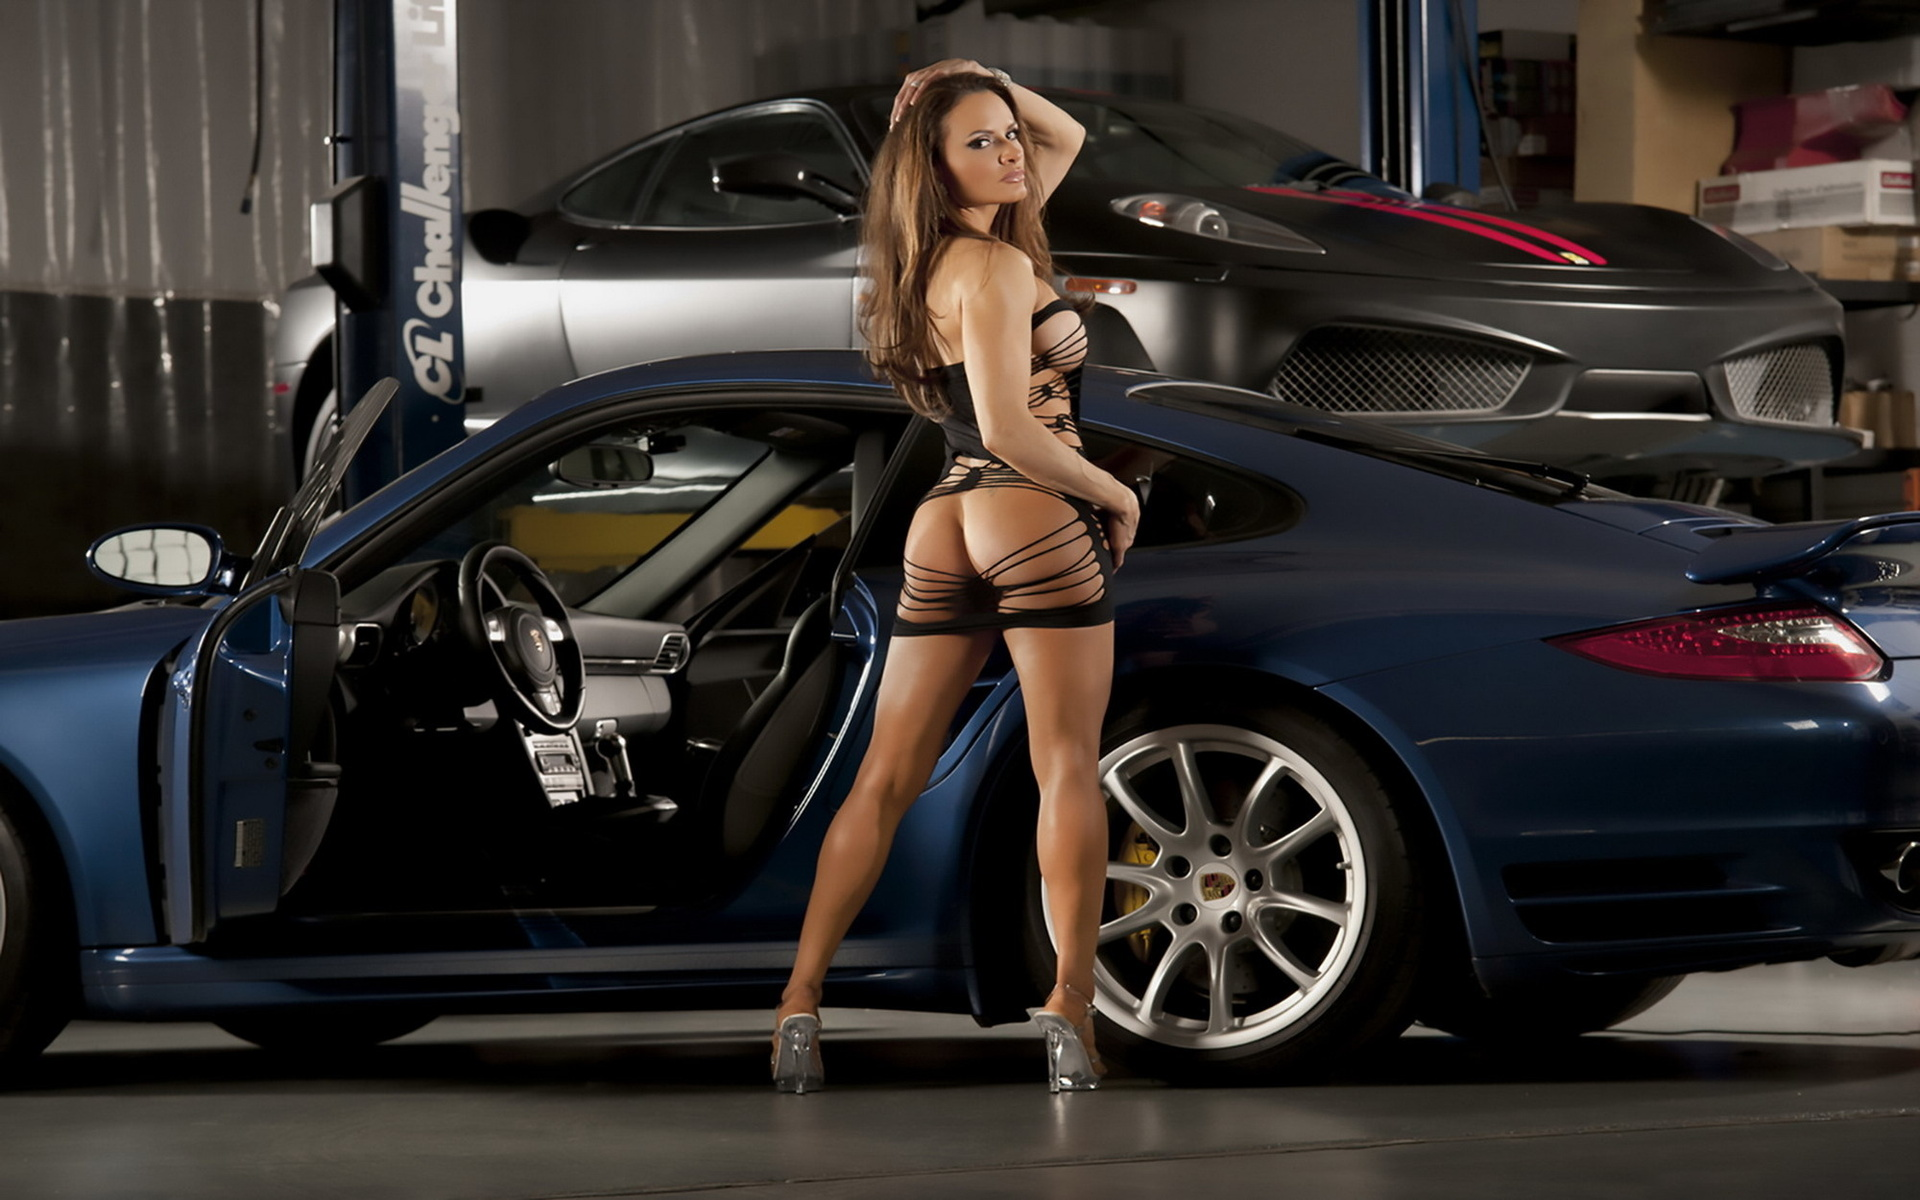 Hot babes nude with cars — photo 13